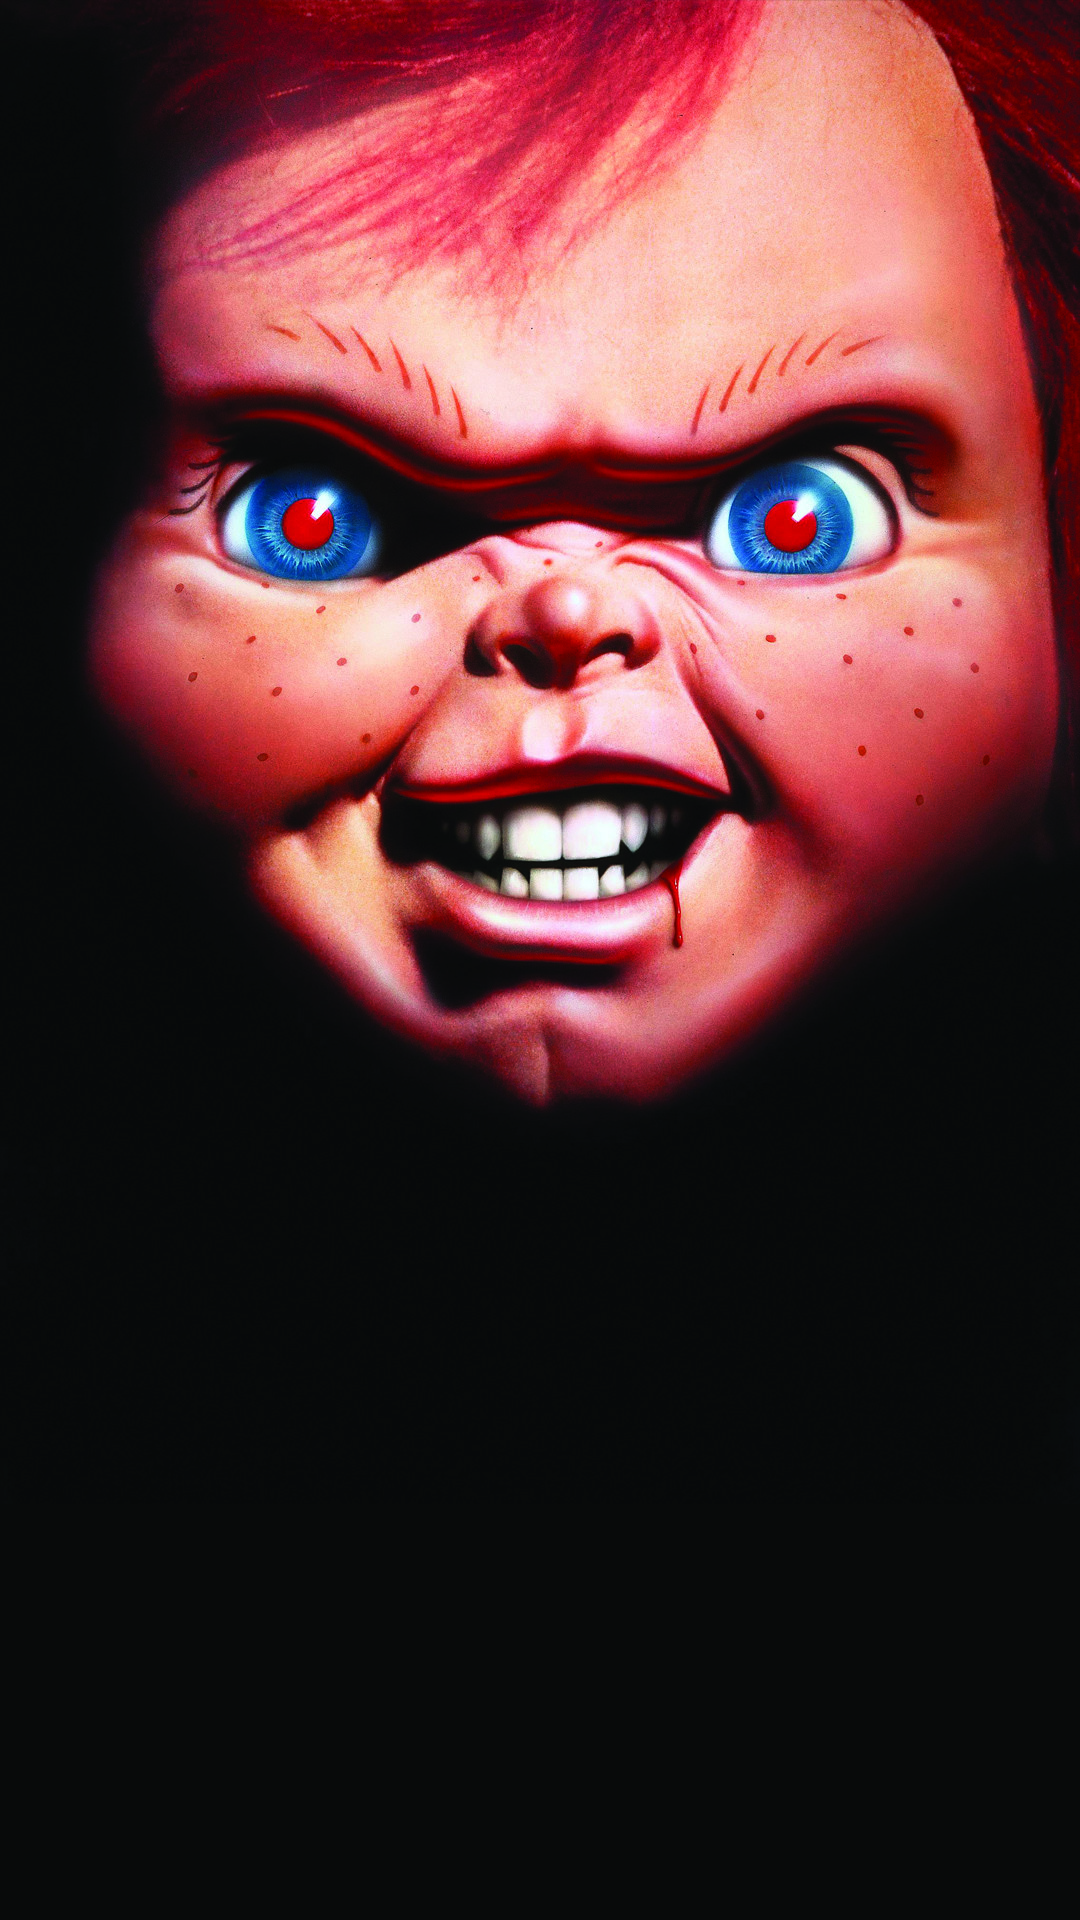 1080x1920 Chucky Scary Doll Android Wallpaper ...